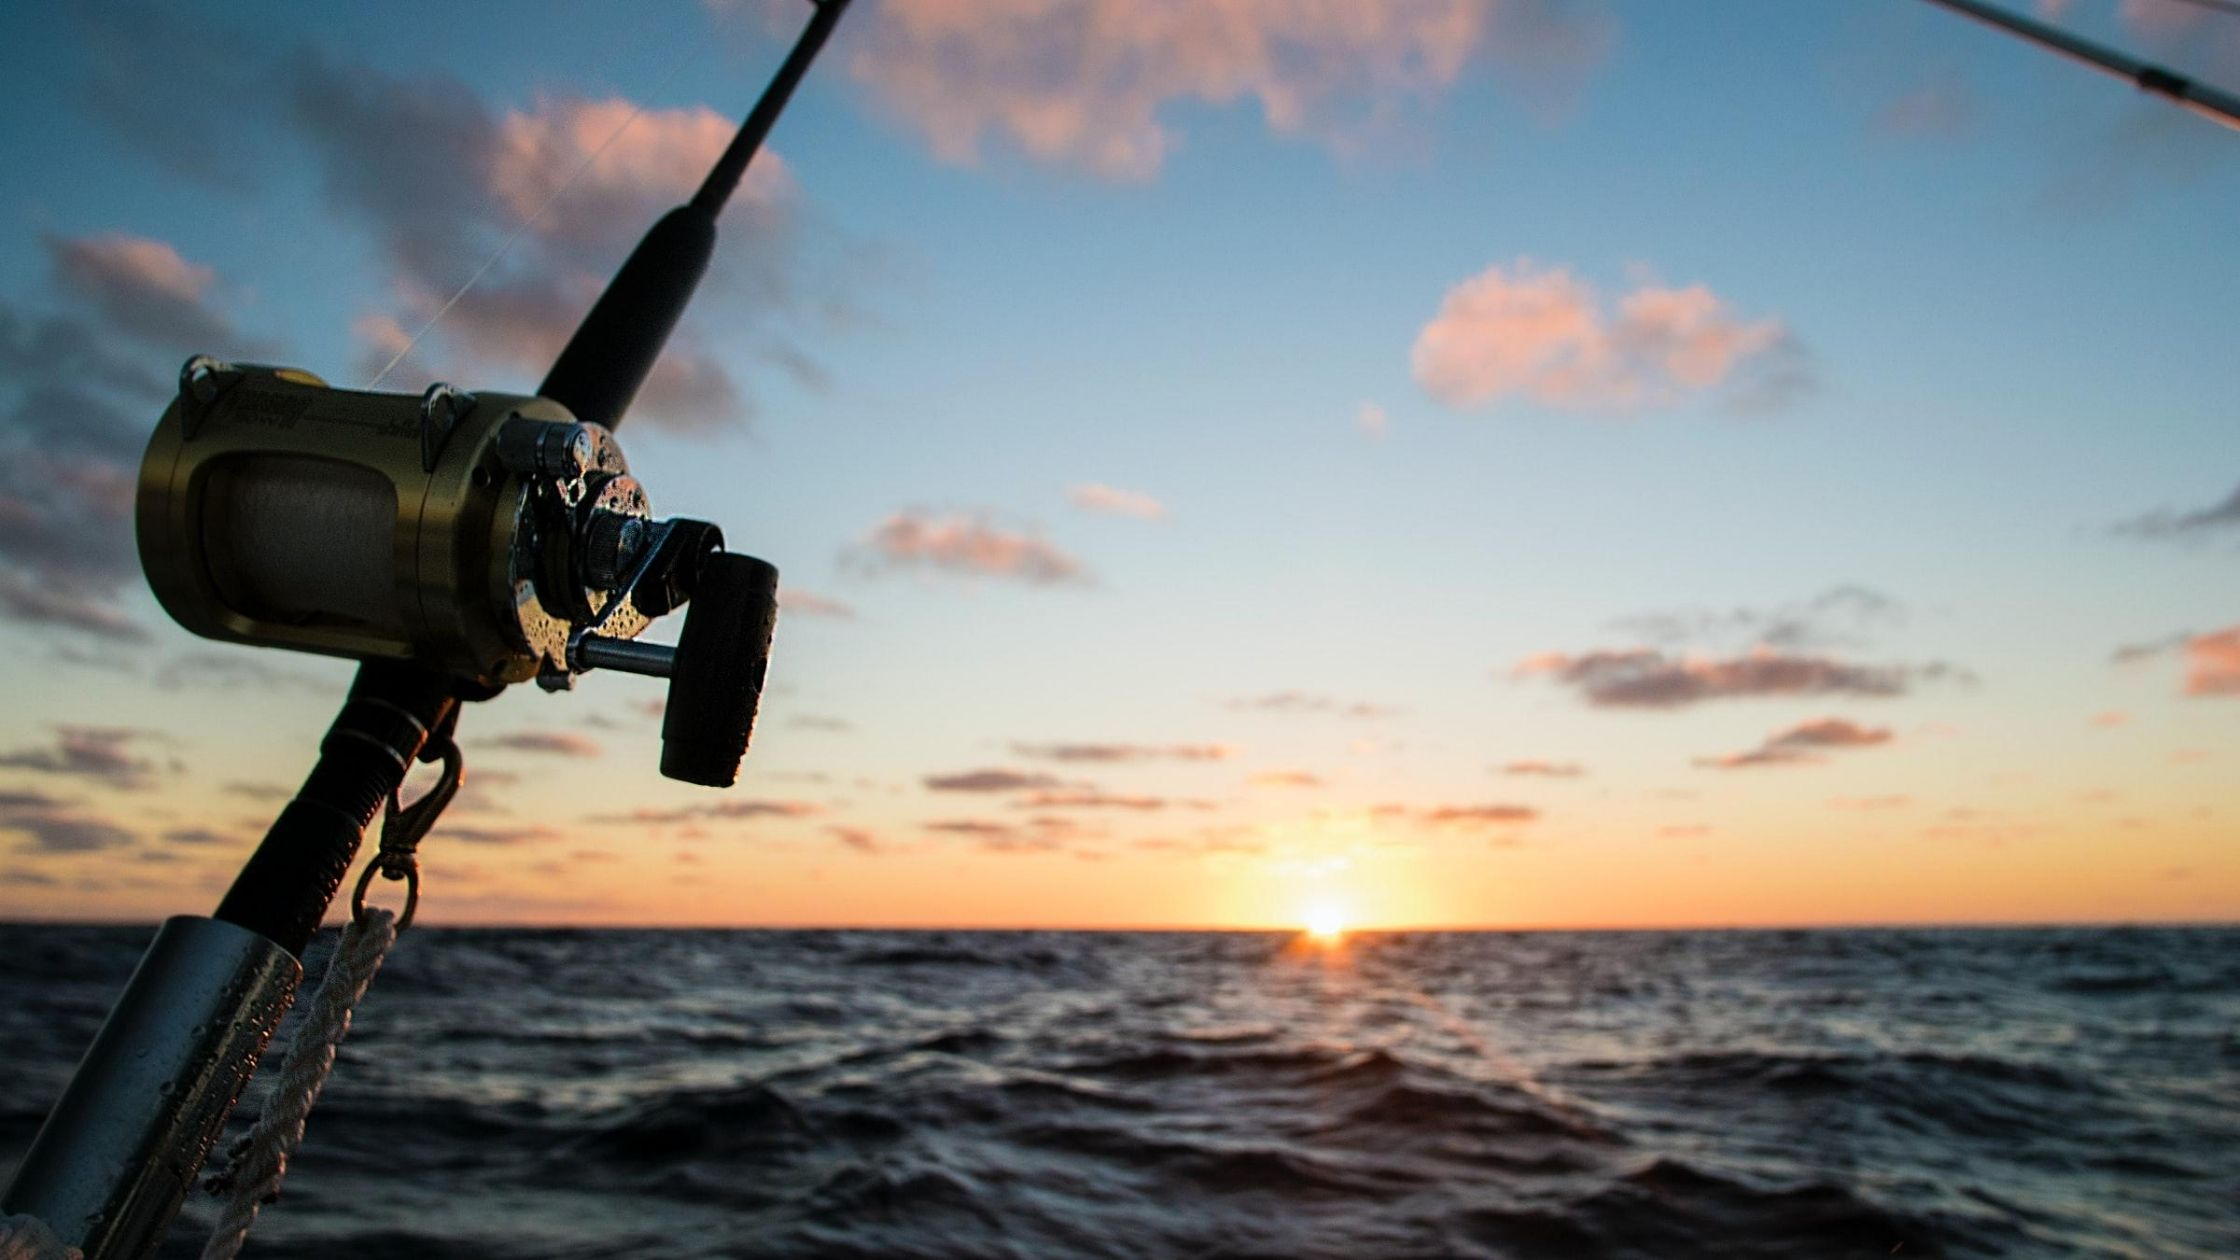 Fishing Tours in Maldives, Sunset Night Fishing Trips with Price